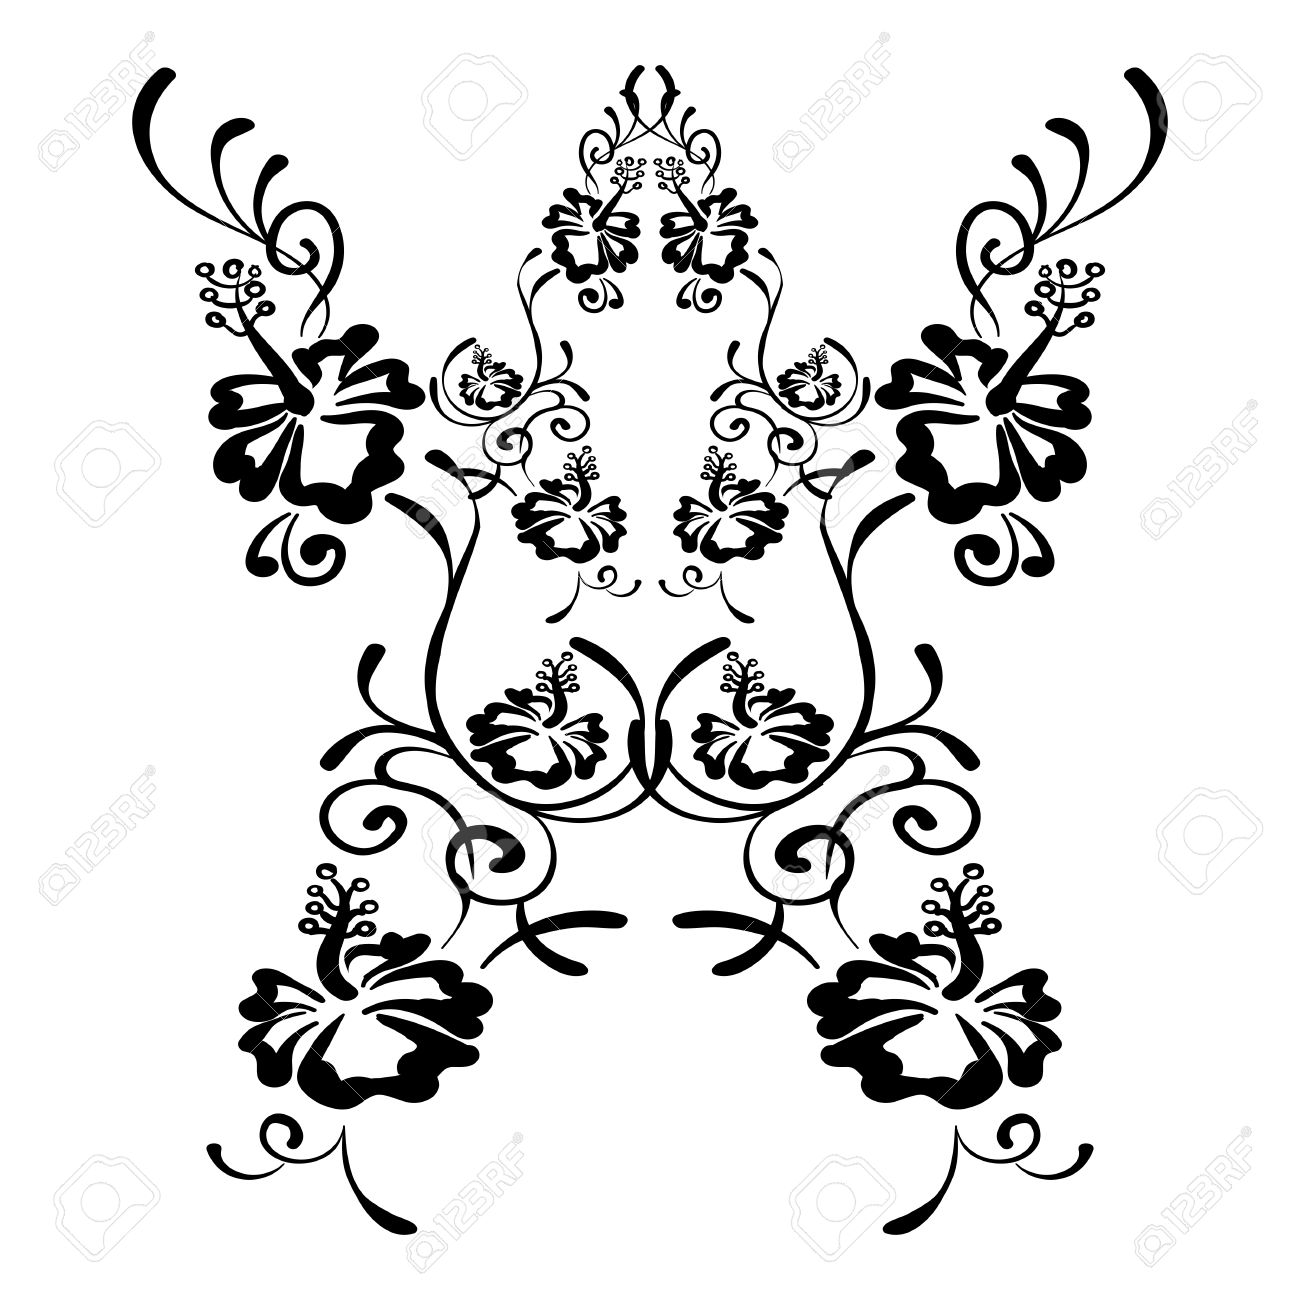 Hibiscus flowers drawing and sketch with line art tattoo sketch hibiscus flowers drawing and sketch with line art tattoo sketch hibiscus on white background izmirmasajfo